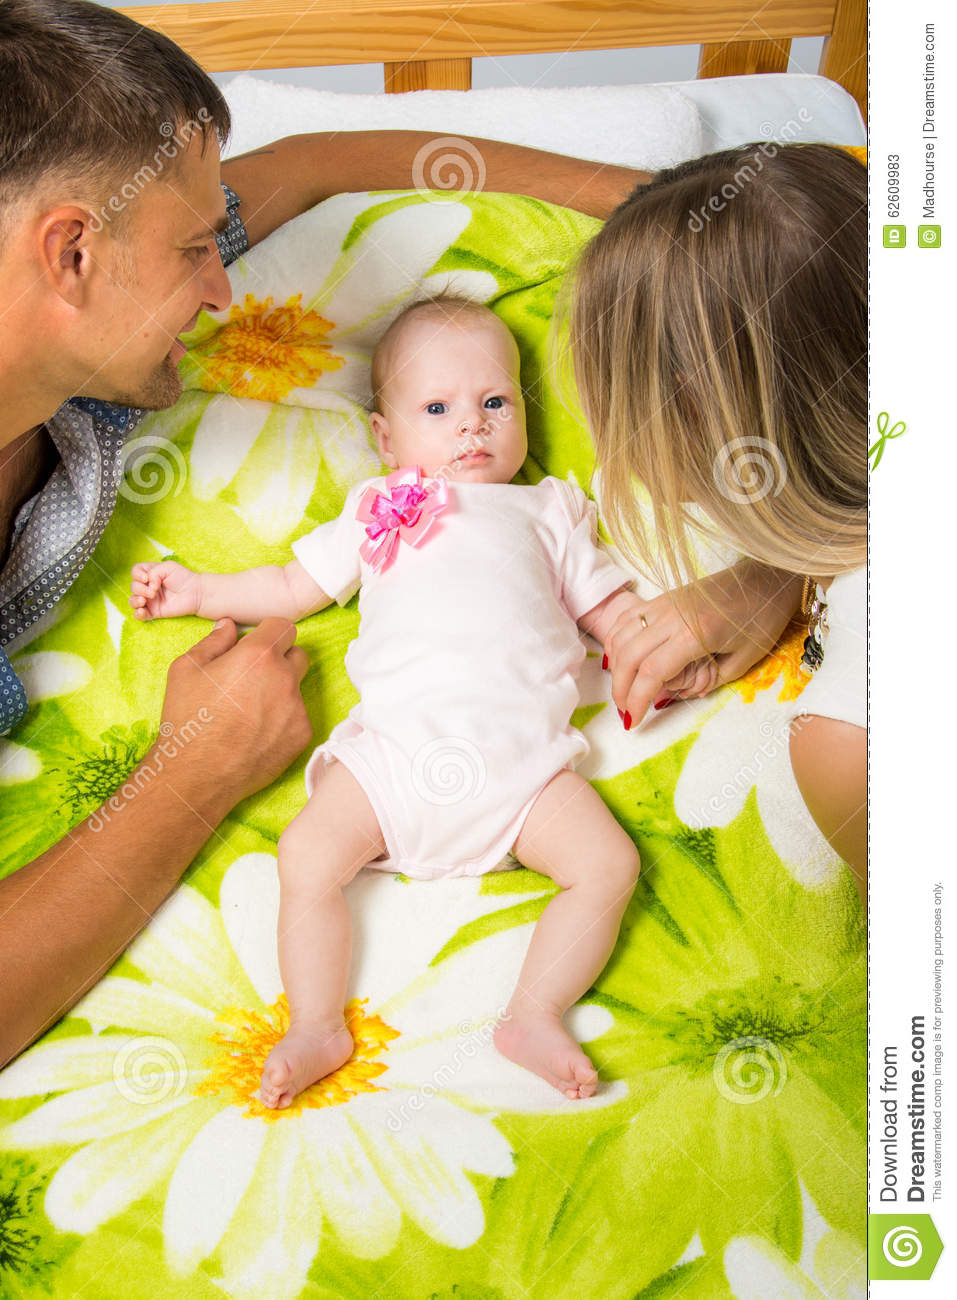 Baby bed next to mom - Mom And Dad Are Sitting Around A Two Month Baby Who Is Lying On The